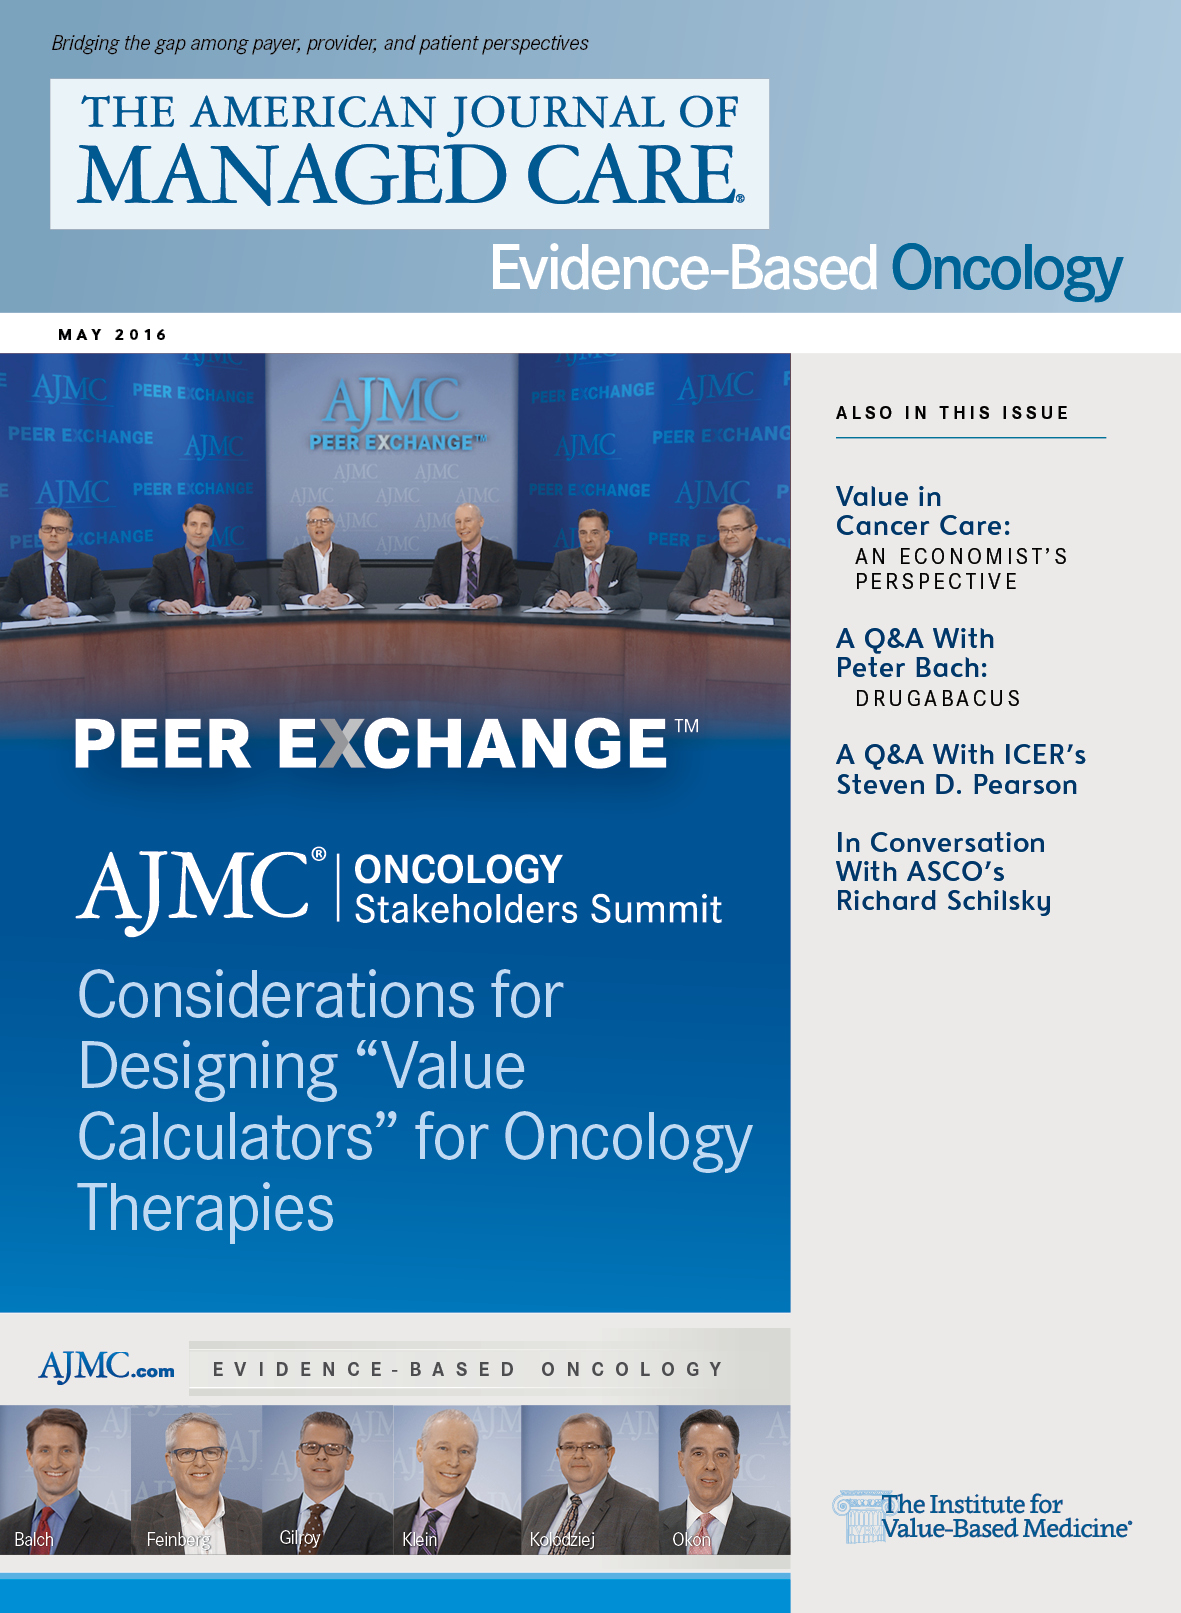 Peer Exchange: Oncology Stakeholders Summit